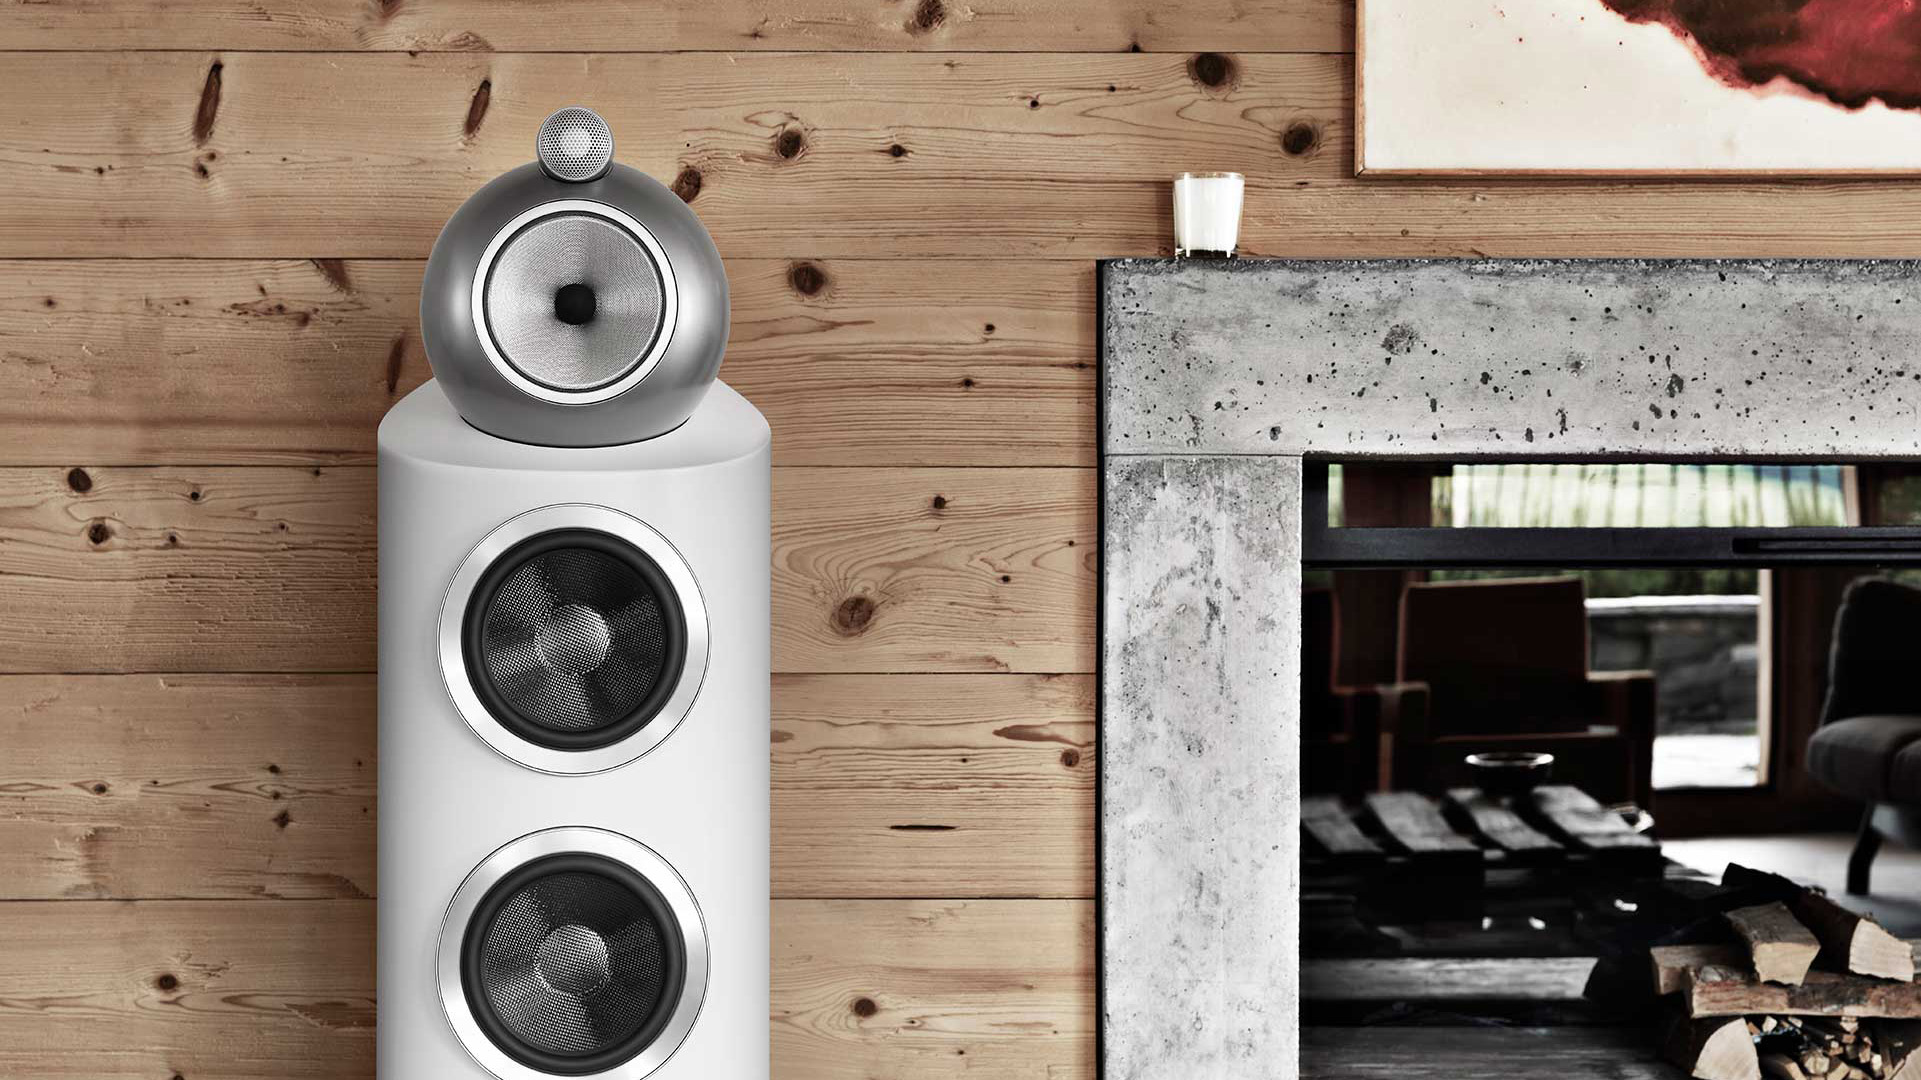 New 800 Diamond Series by Bowers & Wilkins - It did not improve by chance. It improved by change.868 changes to be precise.